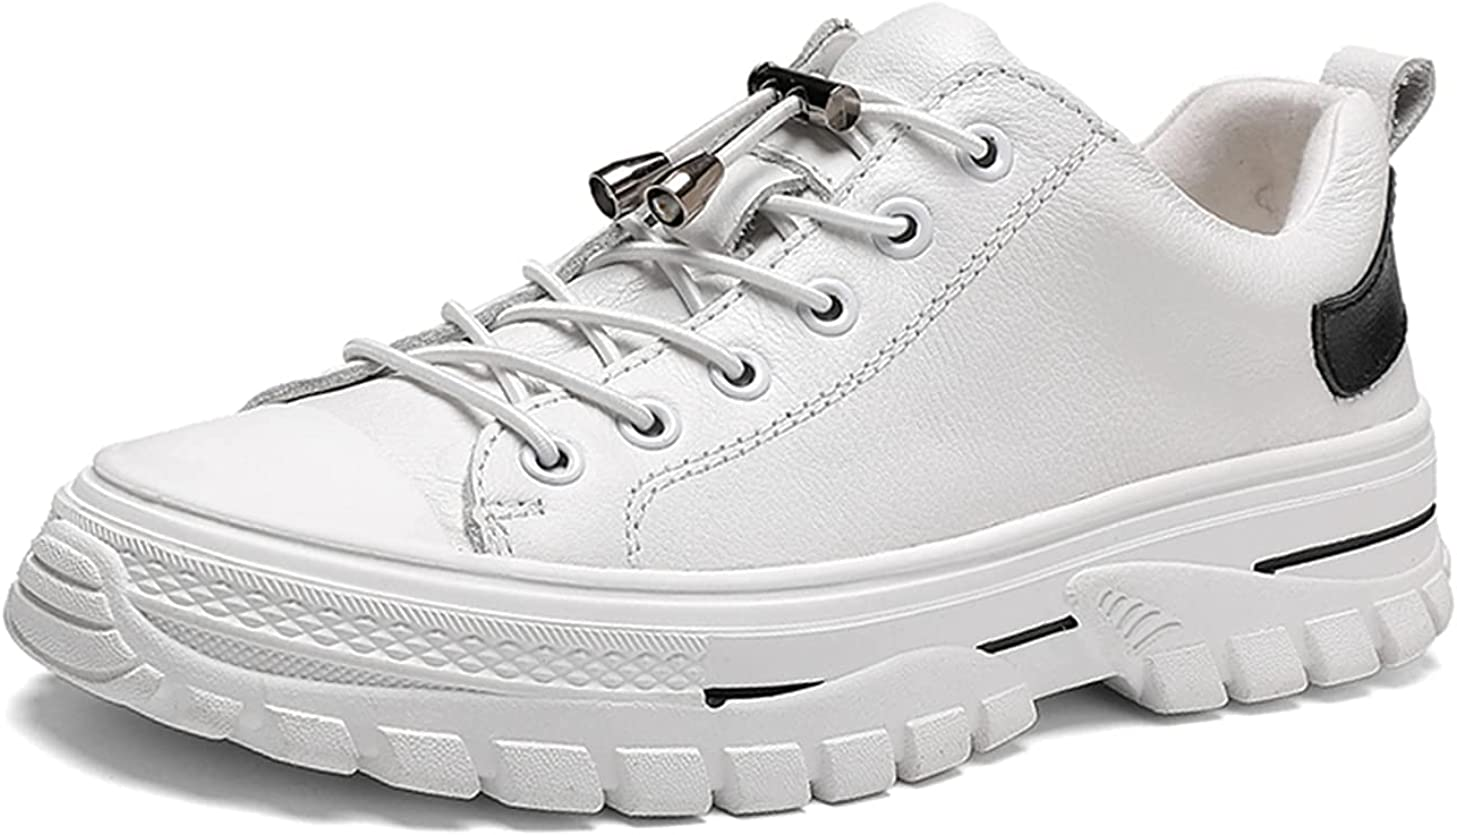 Mail order Minishion Boys Mens All stores are sold Casual Fashion Walking Daily Runnin Trainers